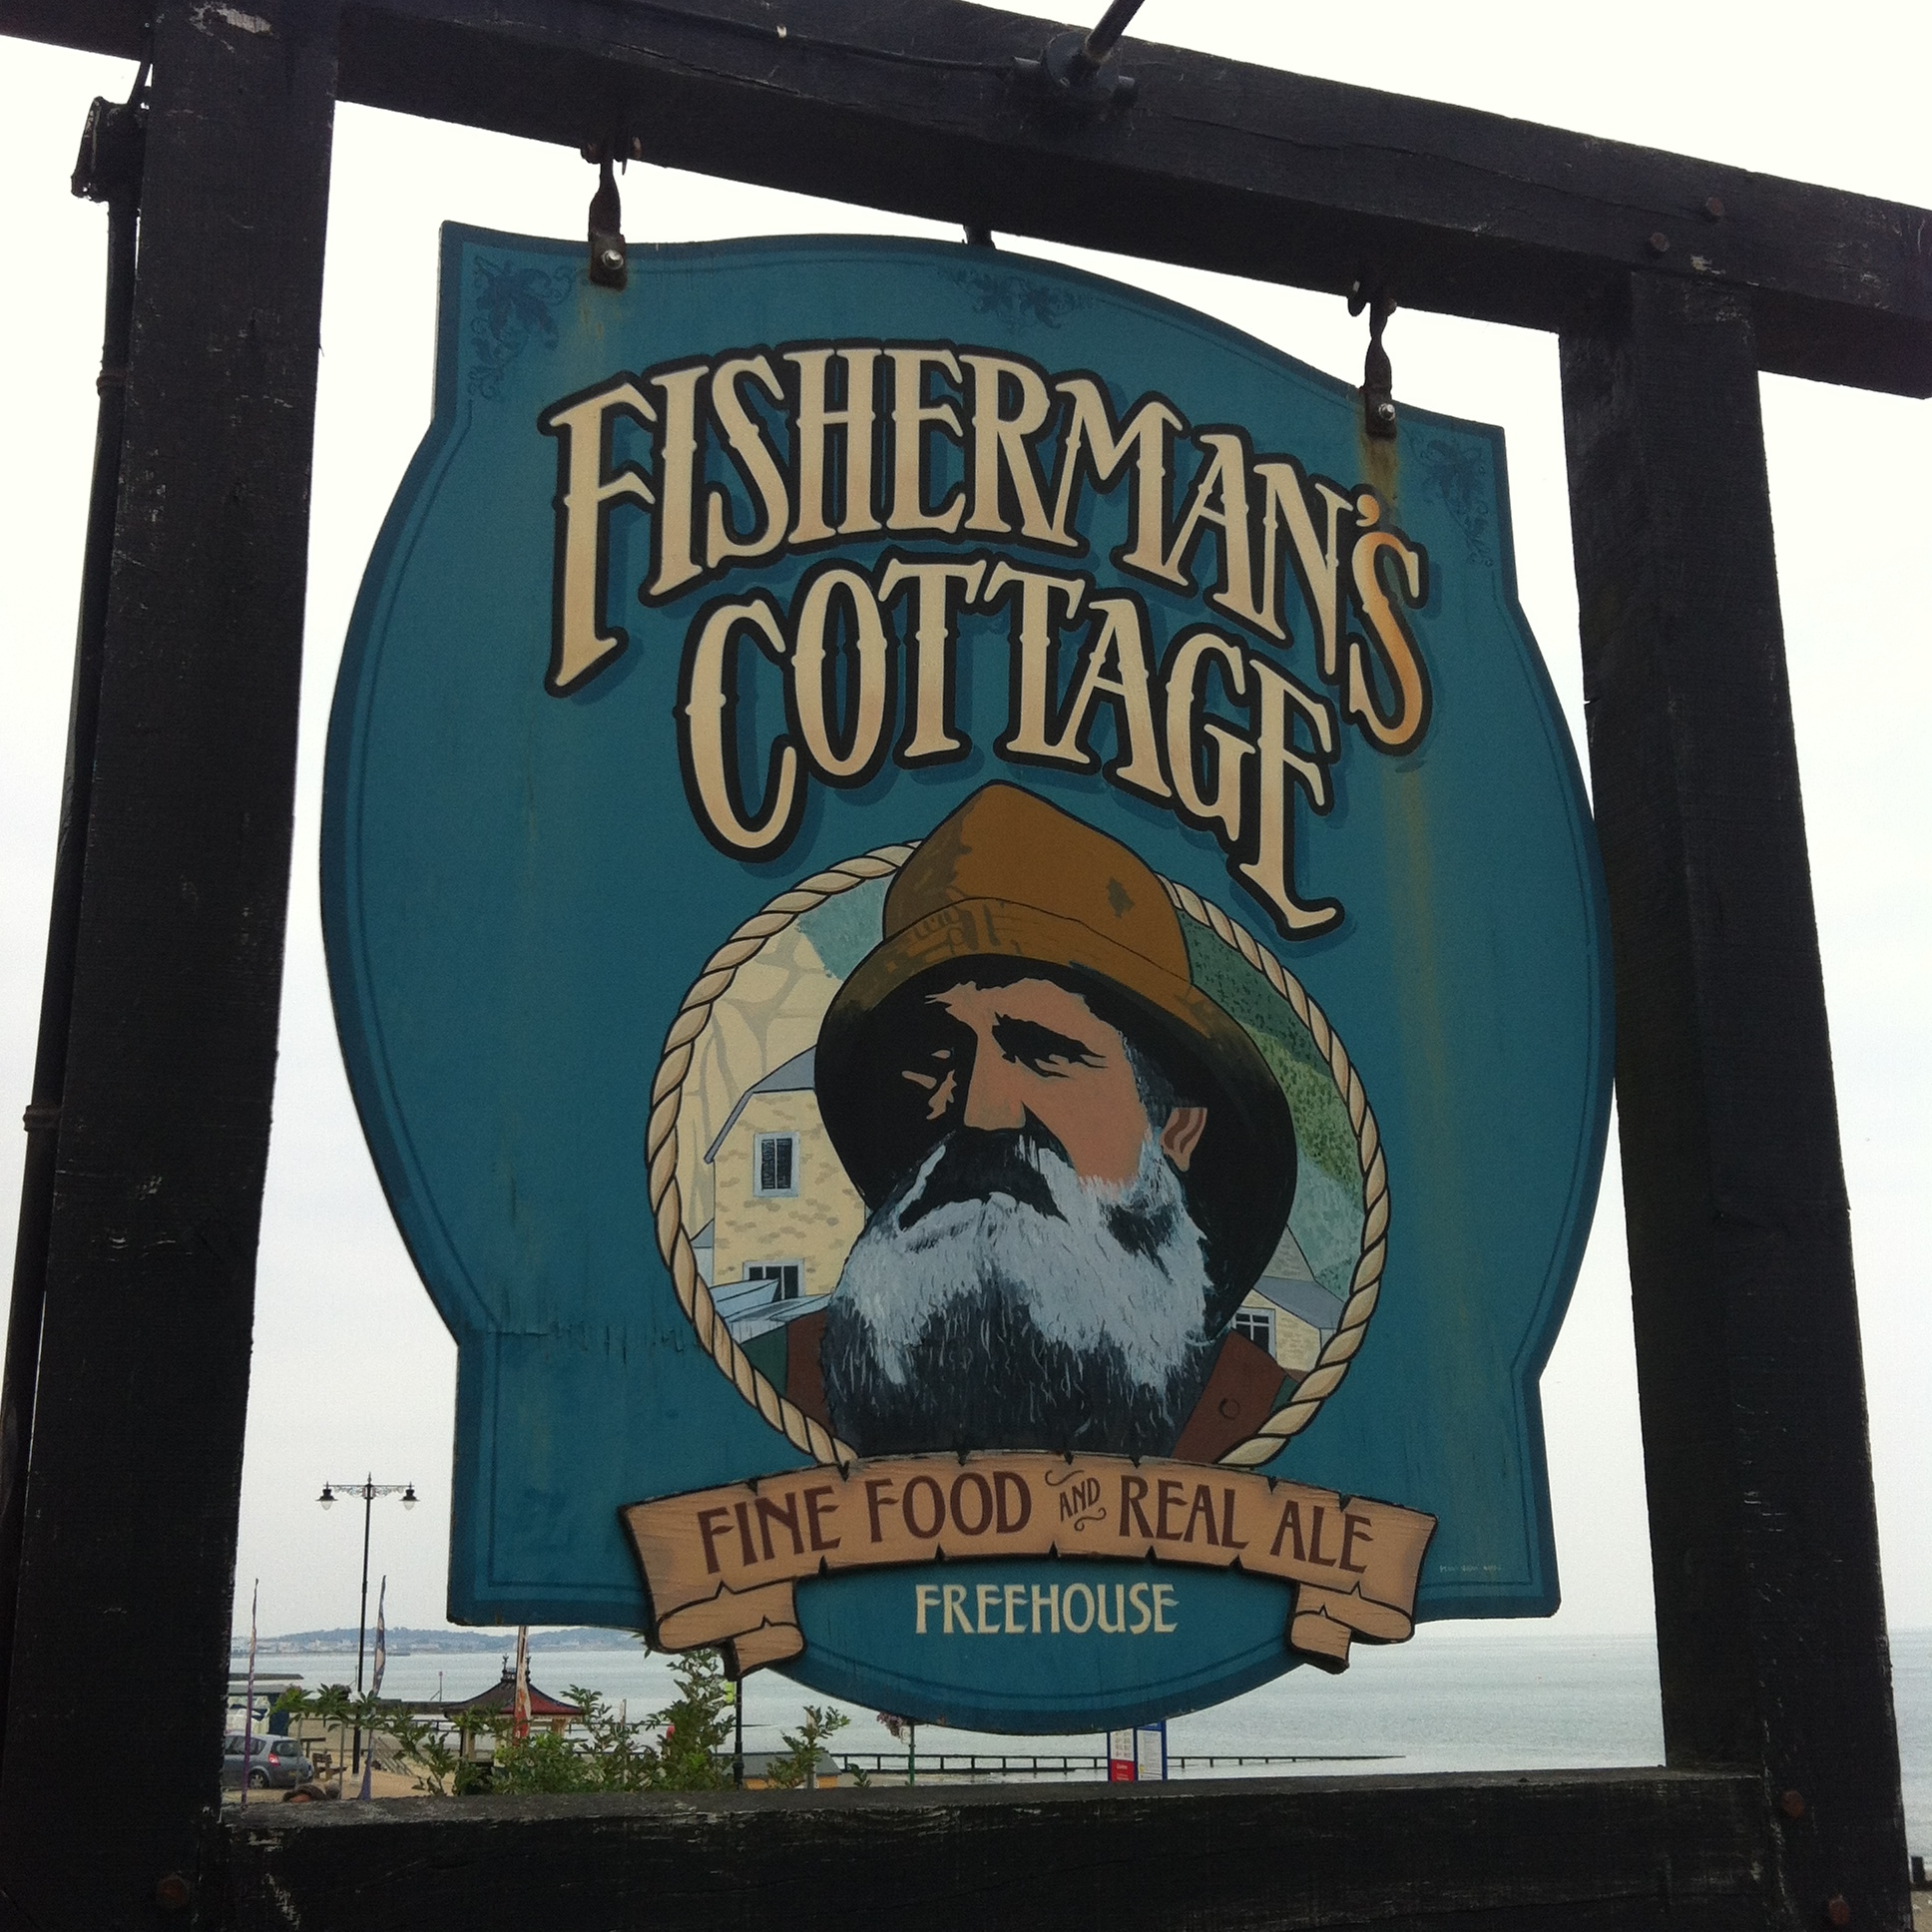 Fisherman's Cottage